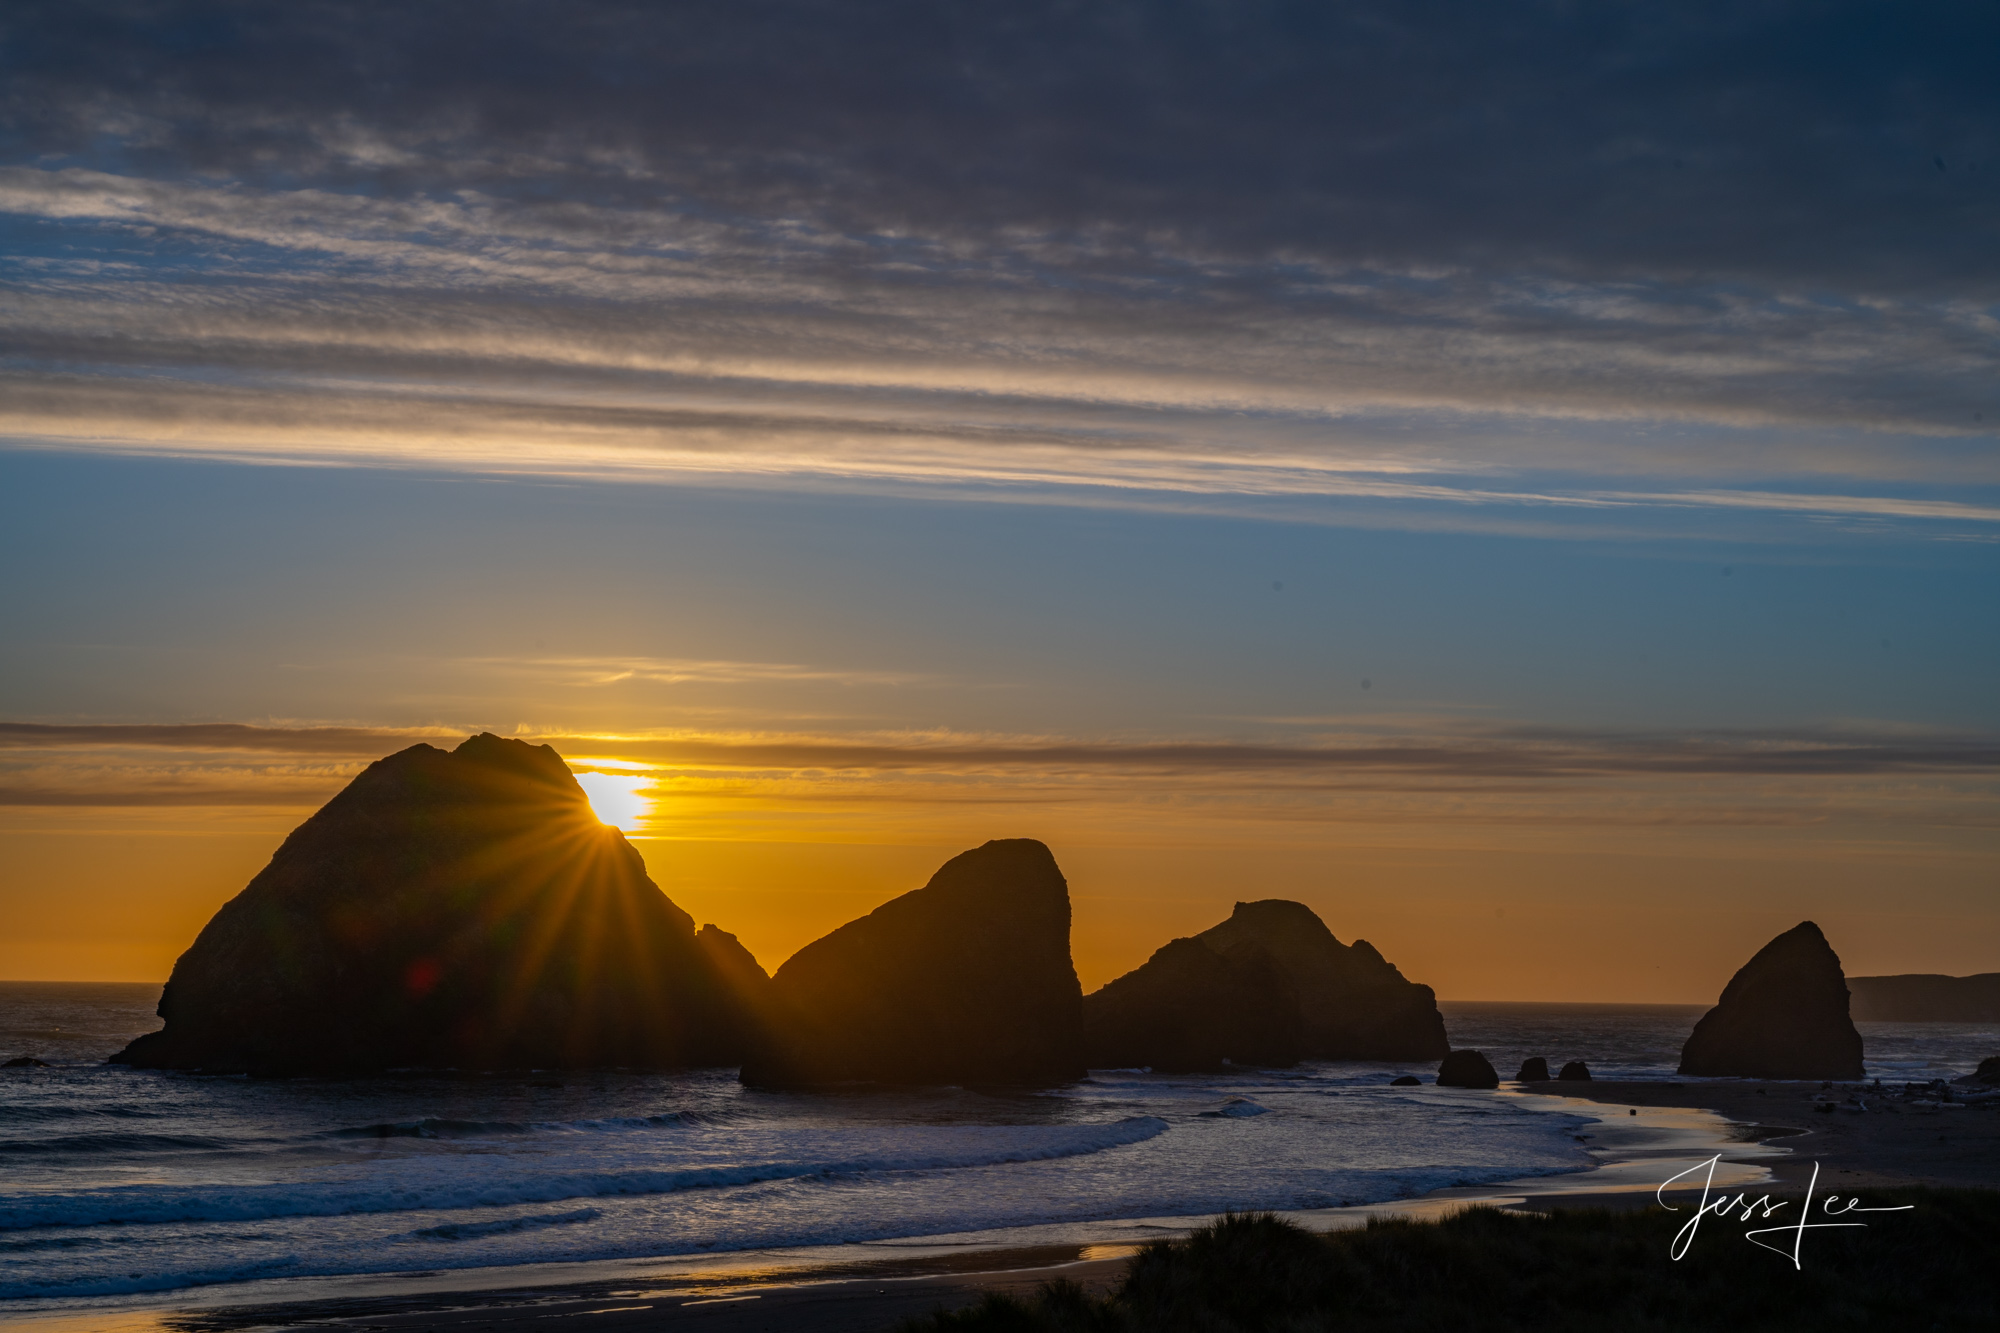 oregon, sunset, western, beach, ocean, waterfall, trees, water, , photo